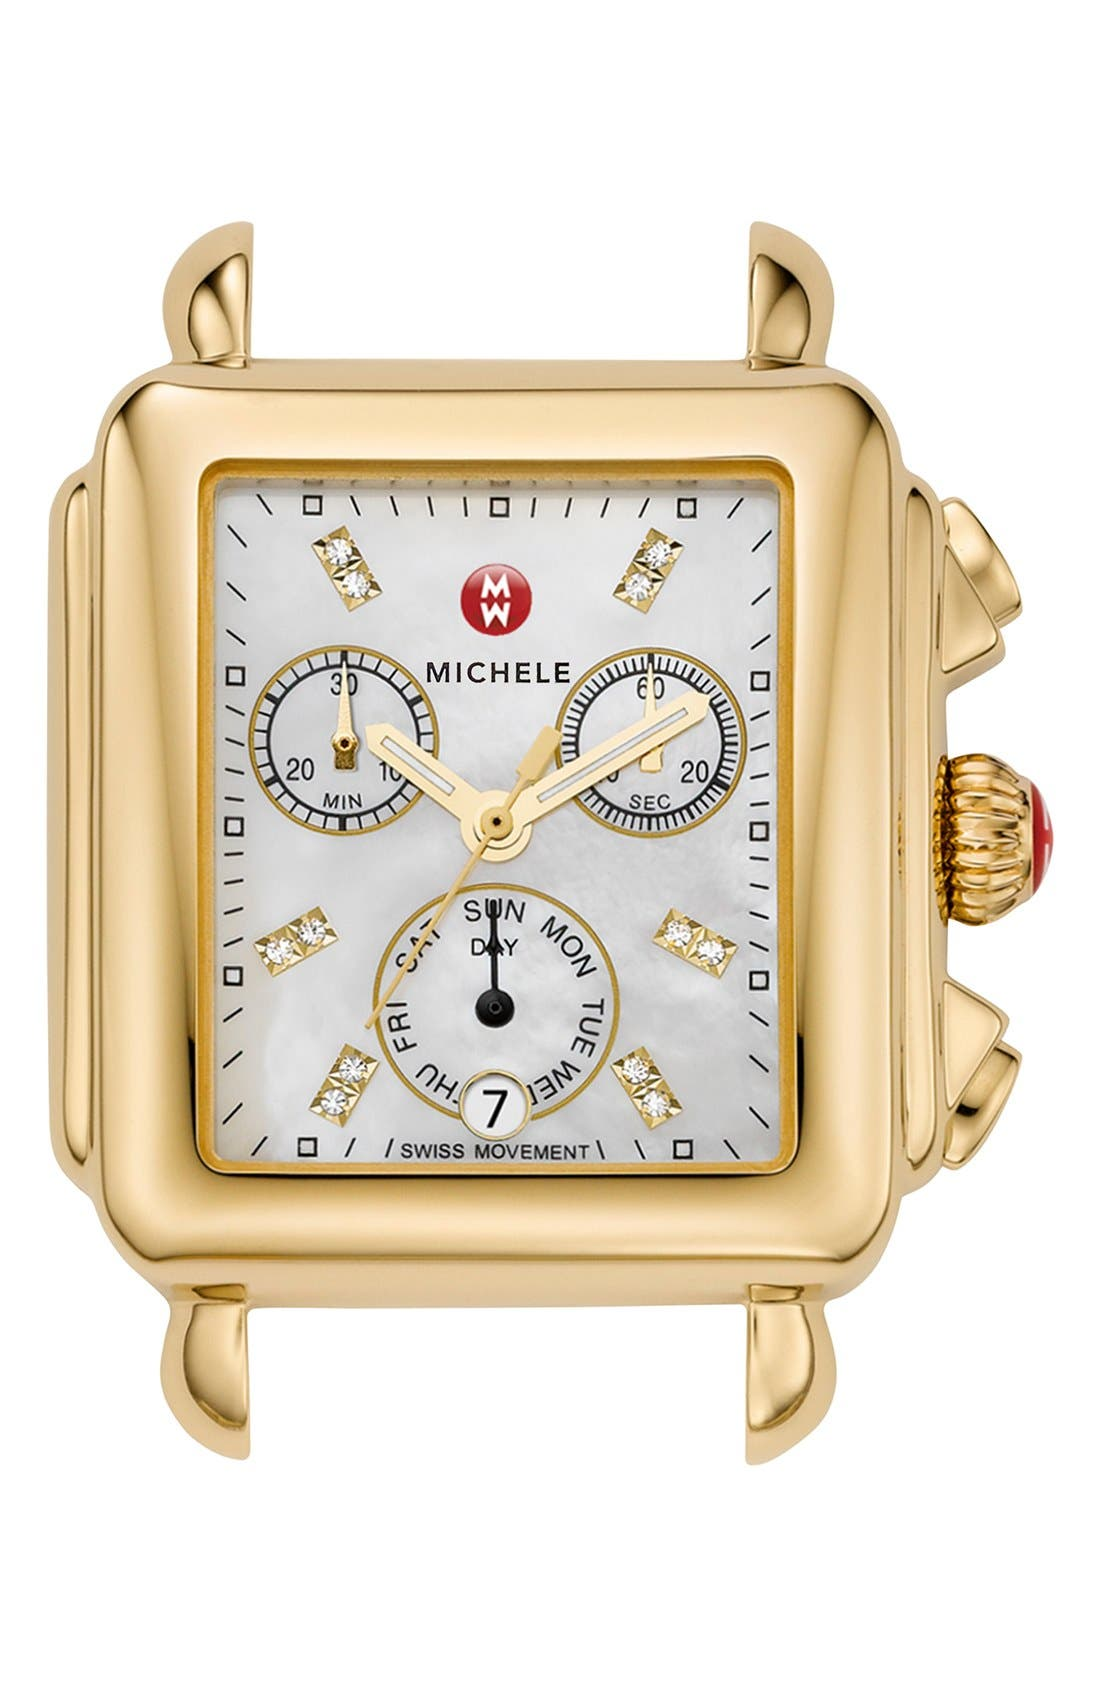 MICHELE Deco Diamond Dial Gold Plated Watch Case, 33mm x 35mm